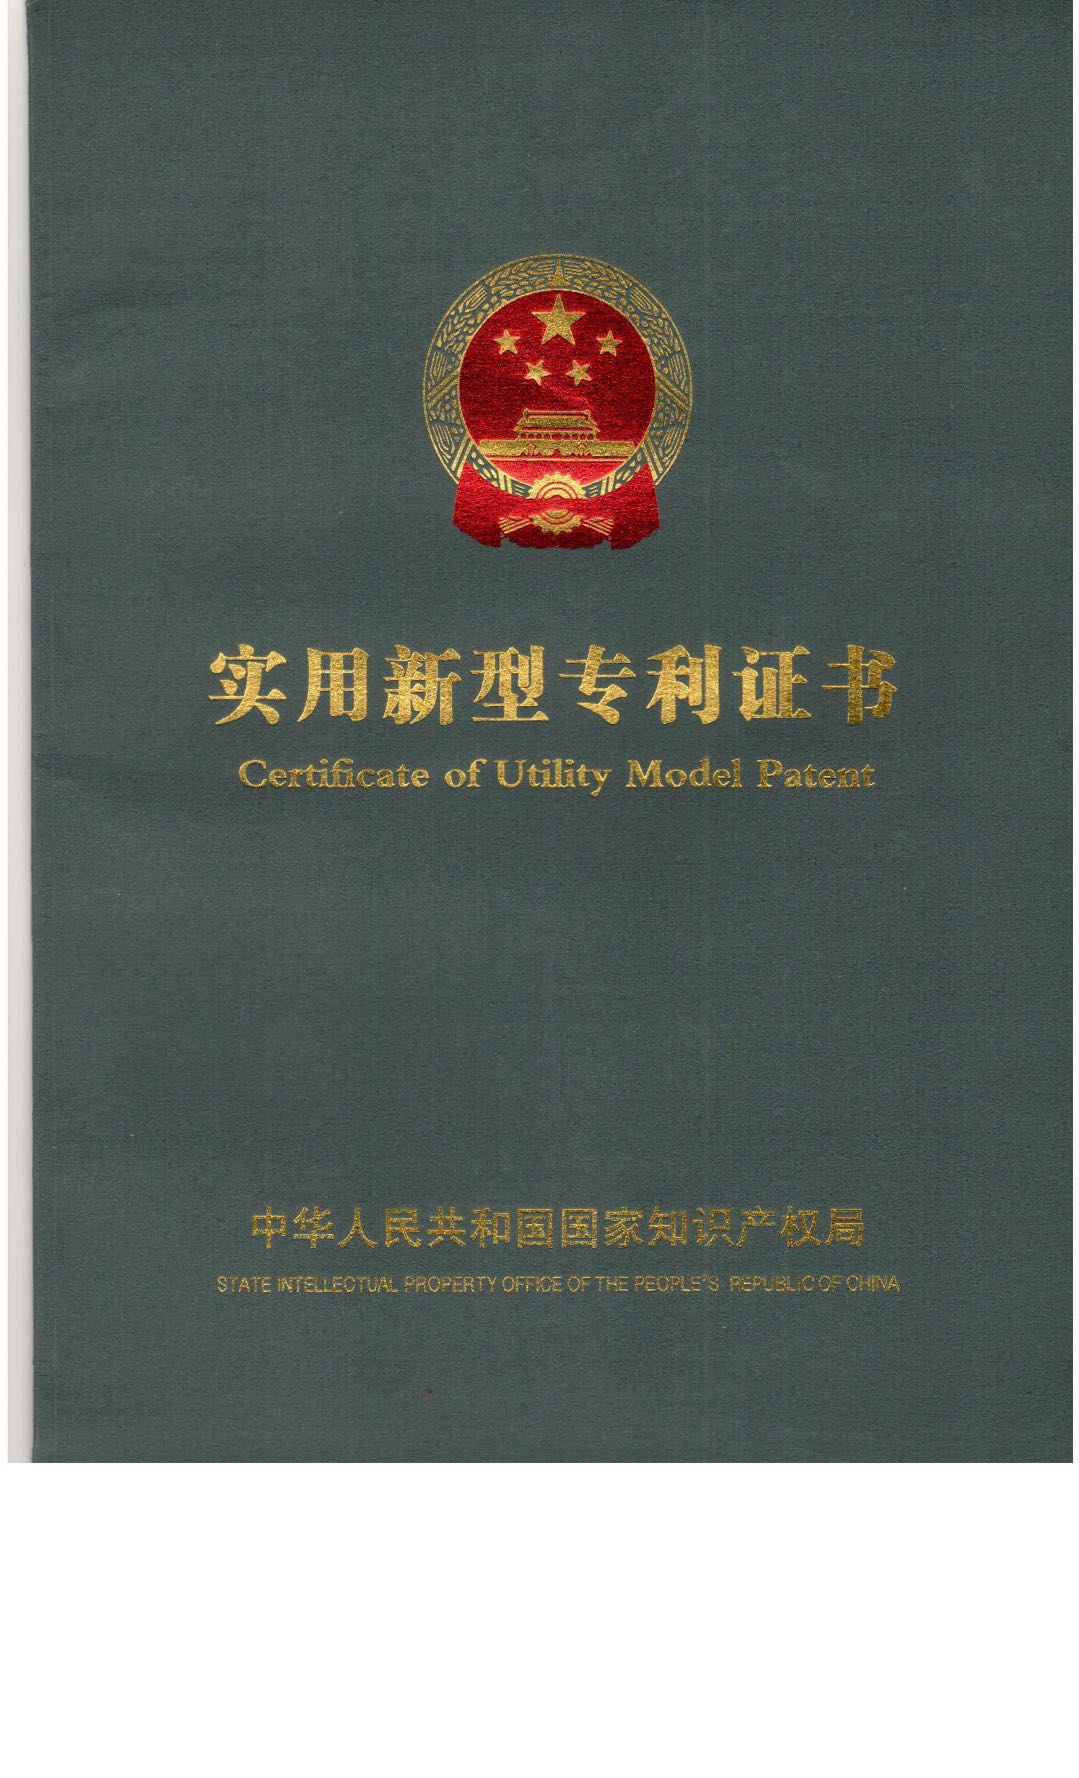 The patent certificate1